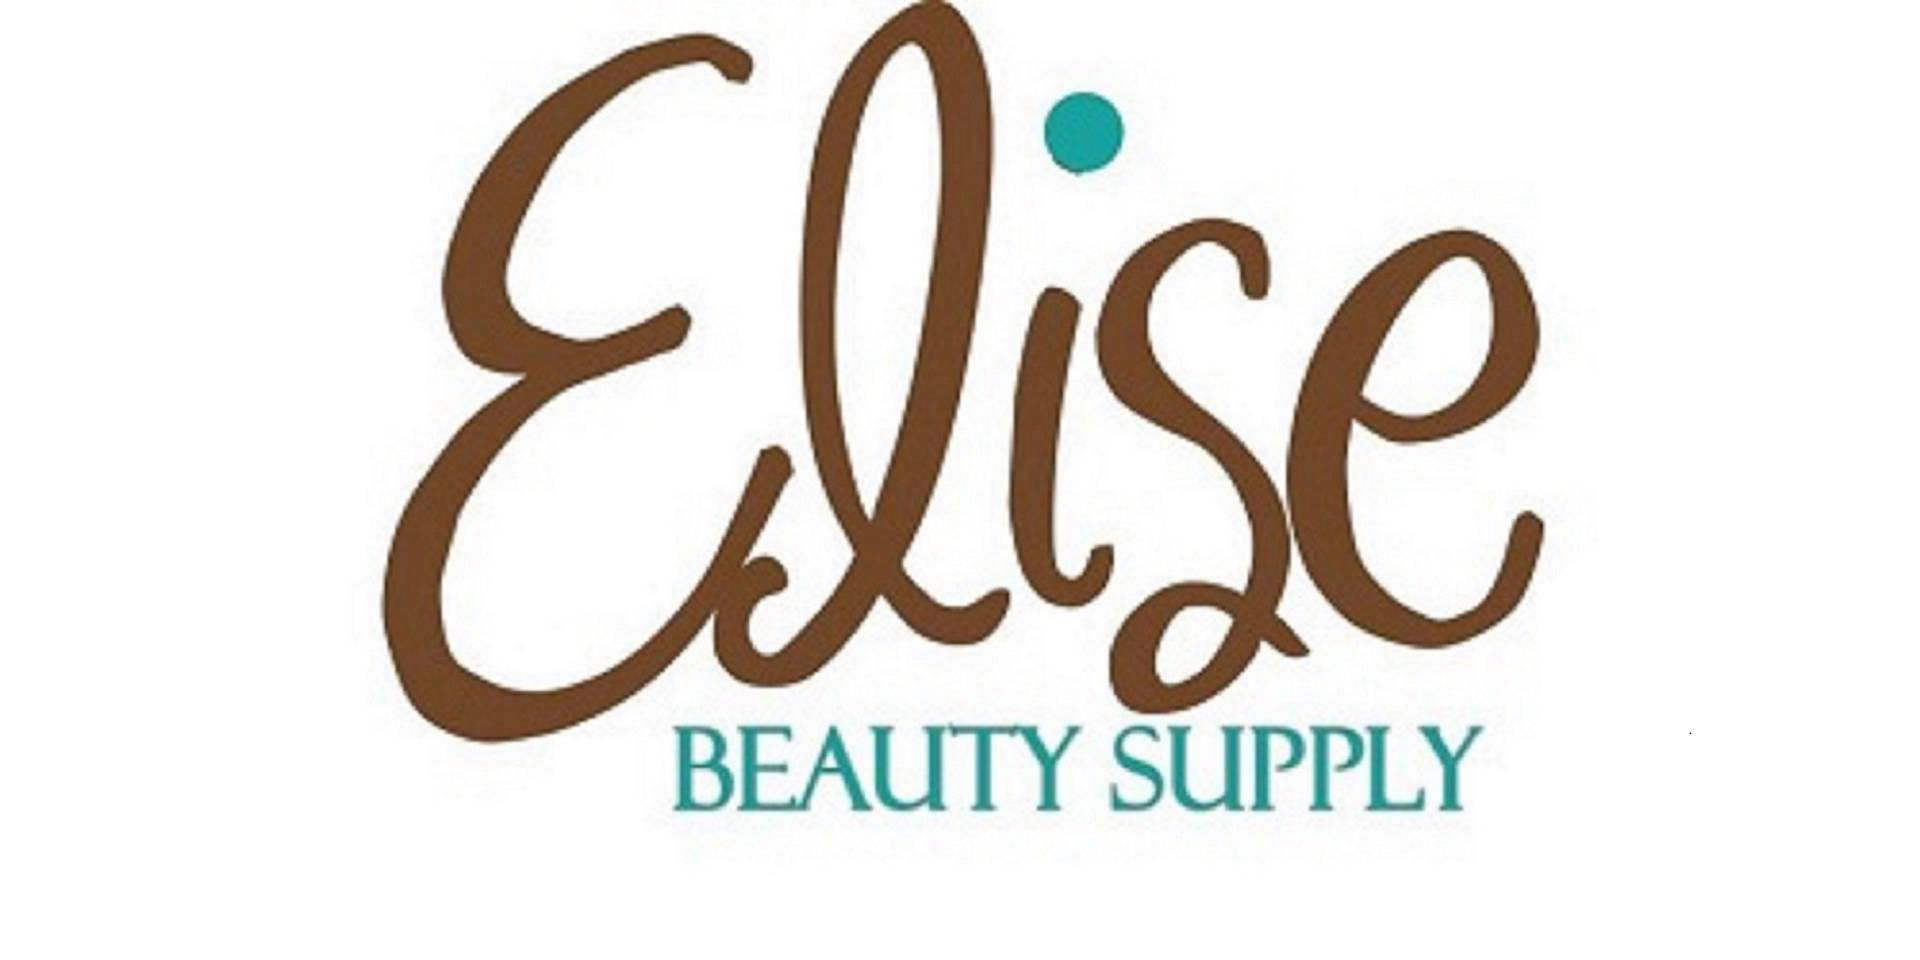 Elise Beauty Supply - Black Owned